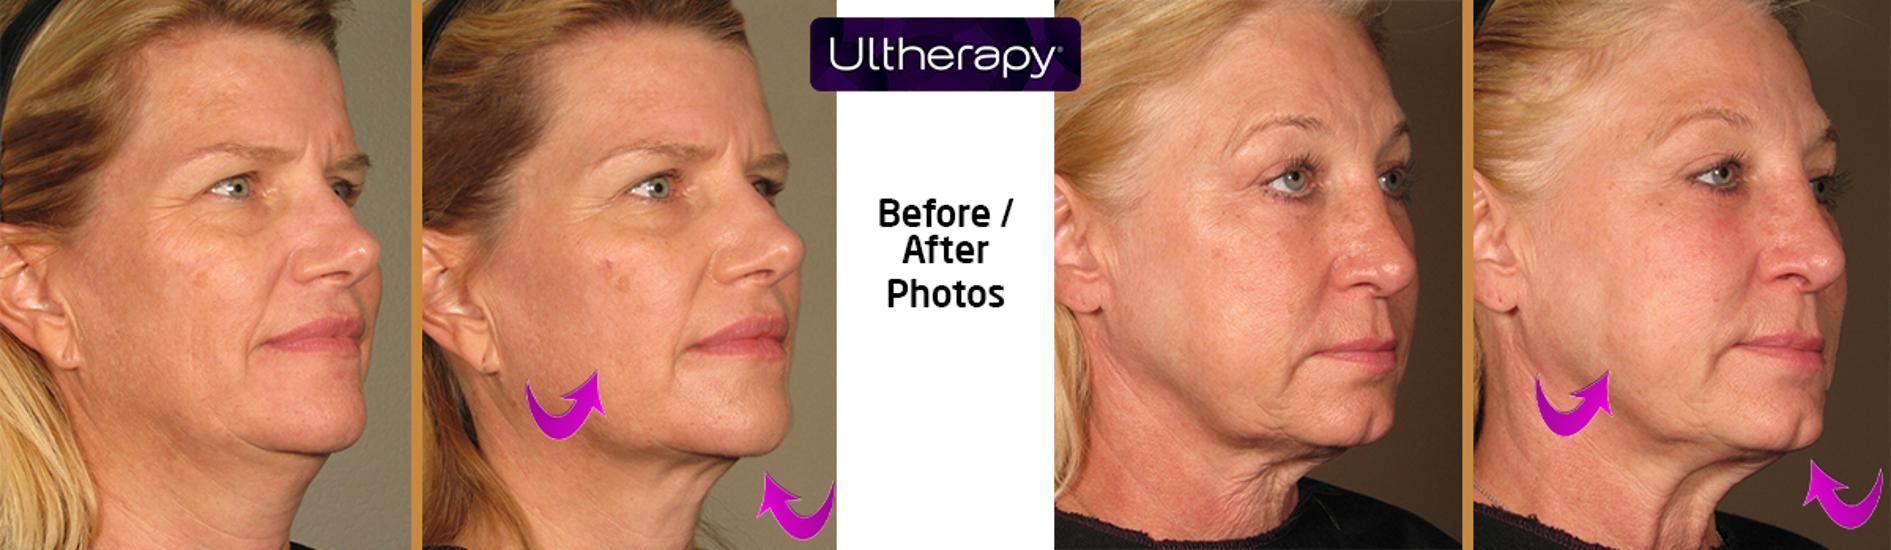 Ultherapy Treatment @ Oxygen Medical Budapest